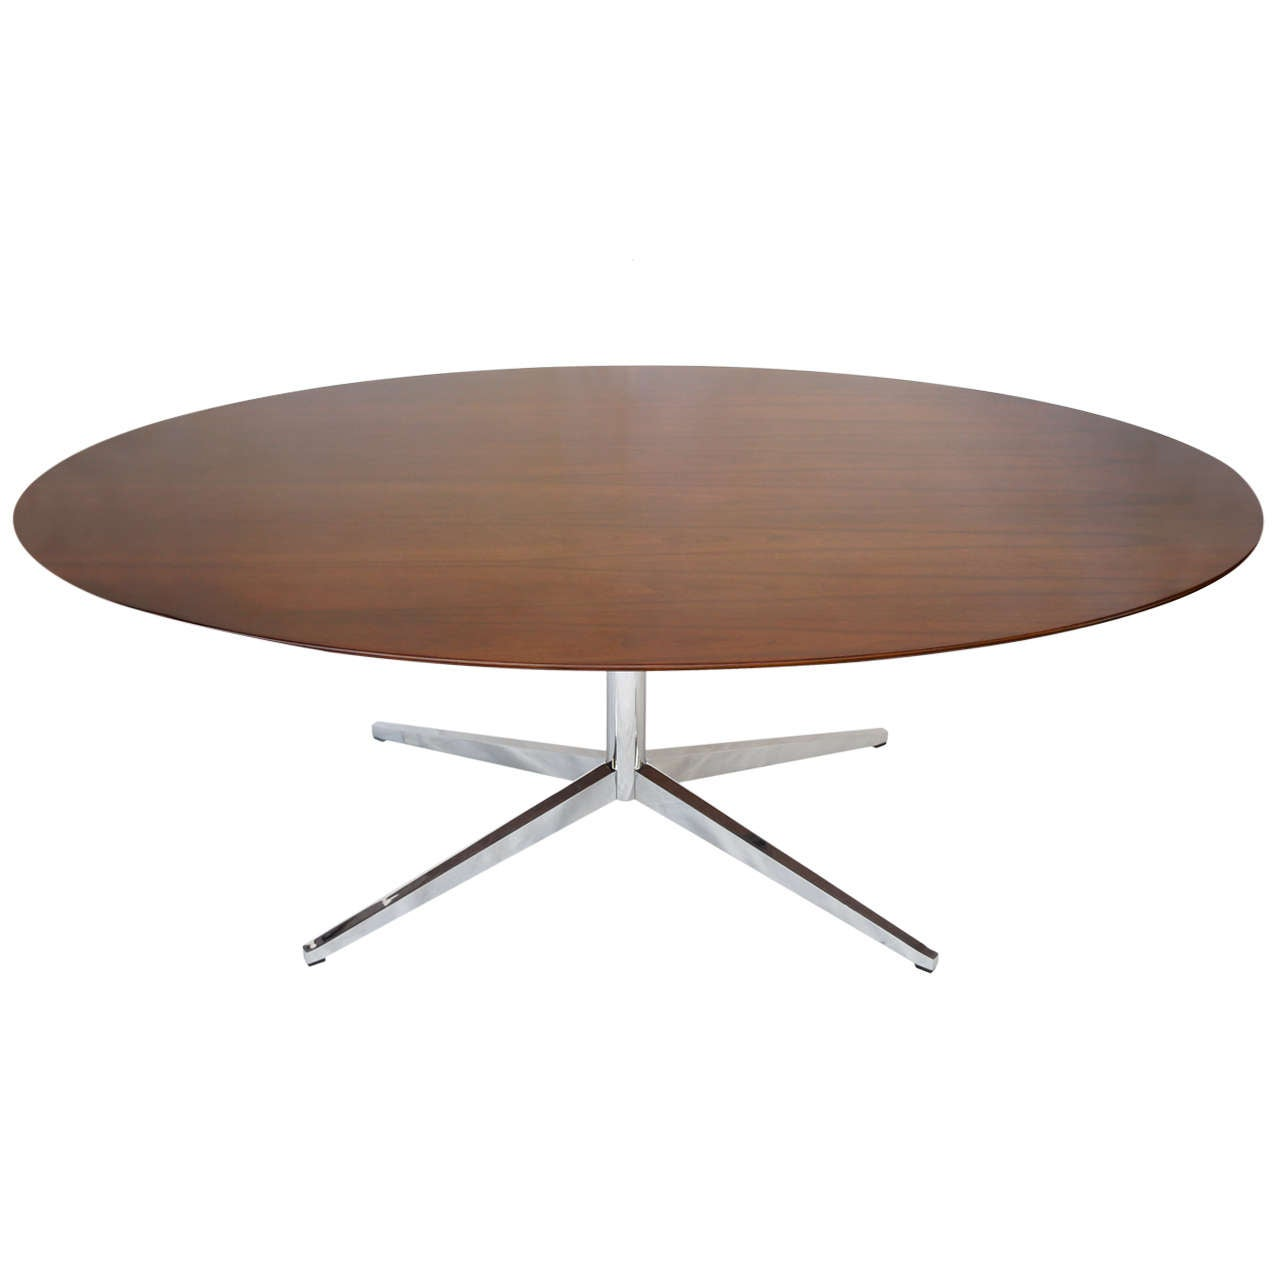 Foot florence knoll oval dining table desk or conference table in